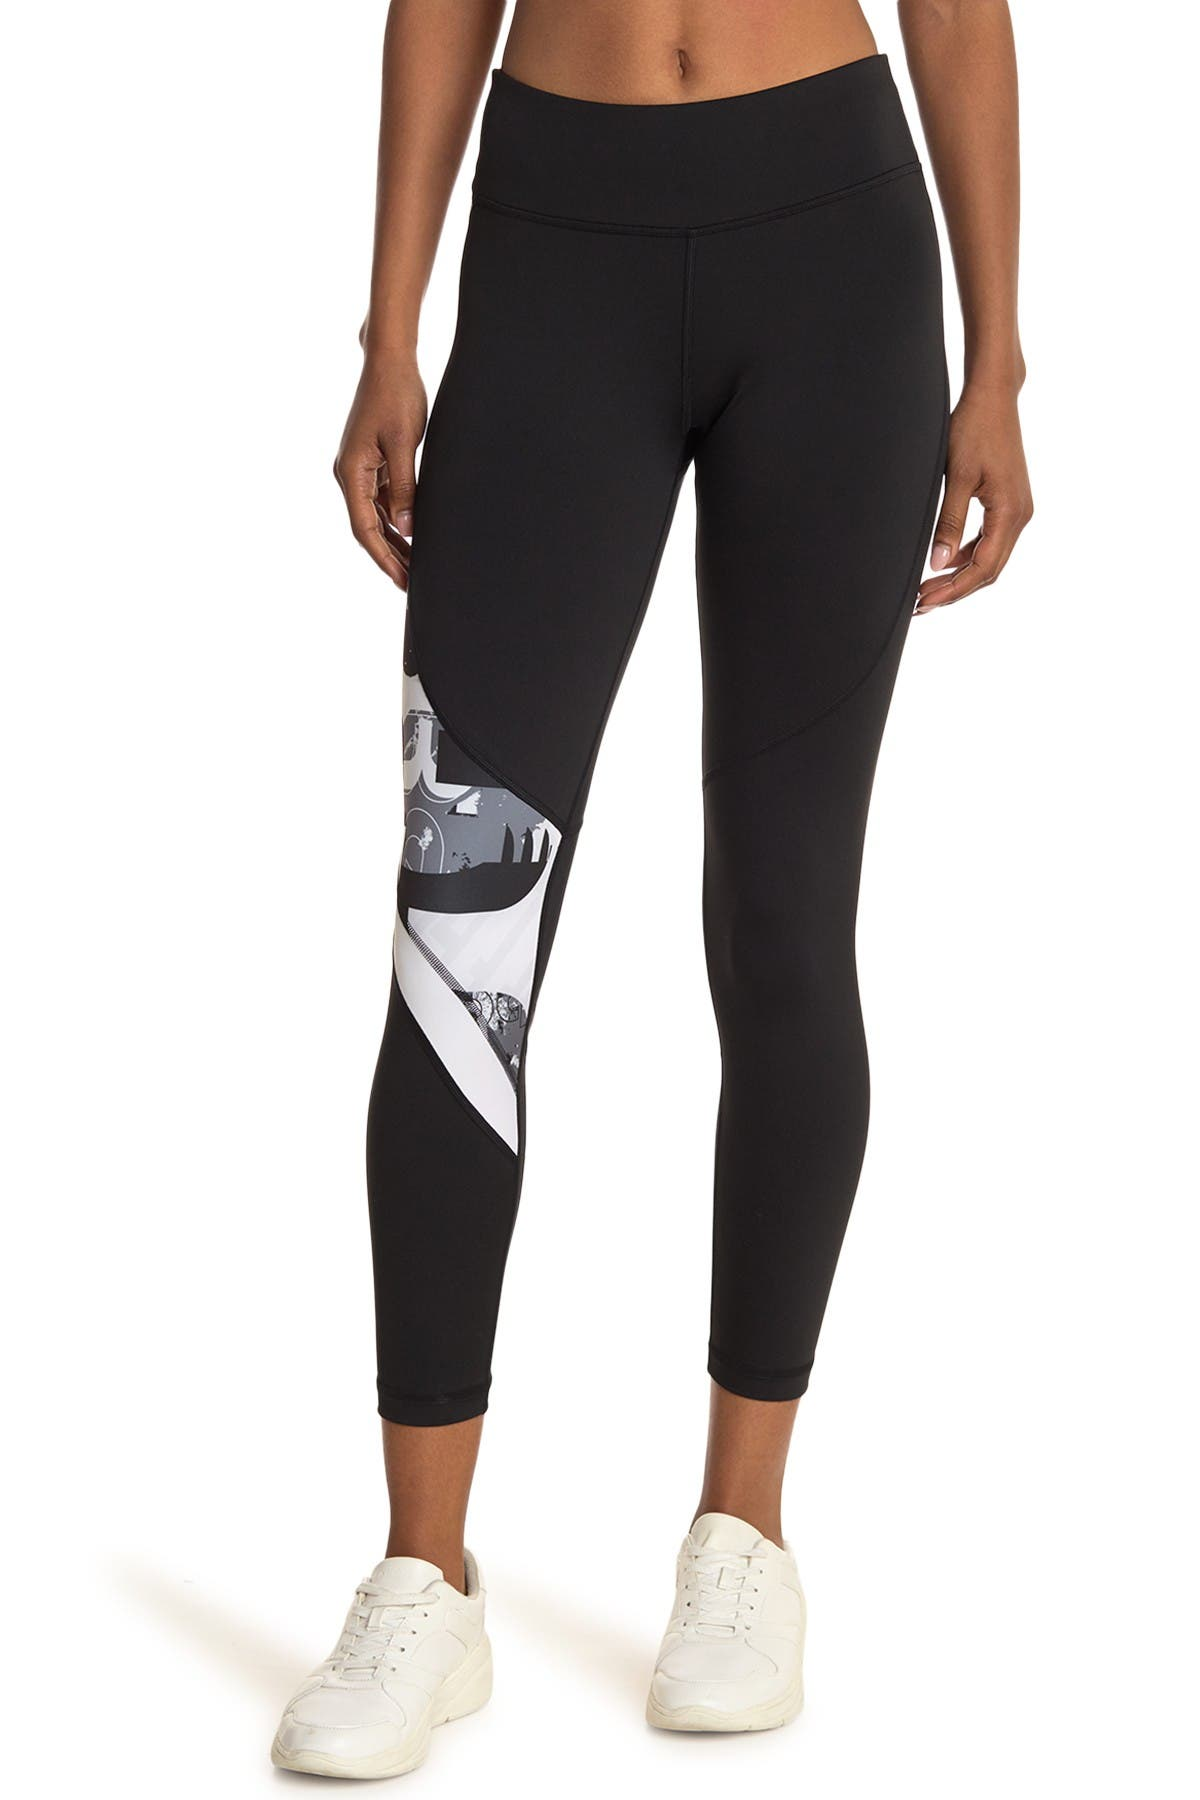 Image of Reebok Printed High Waist Leggings